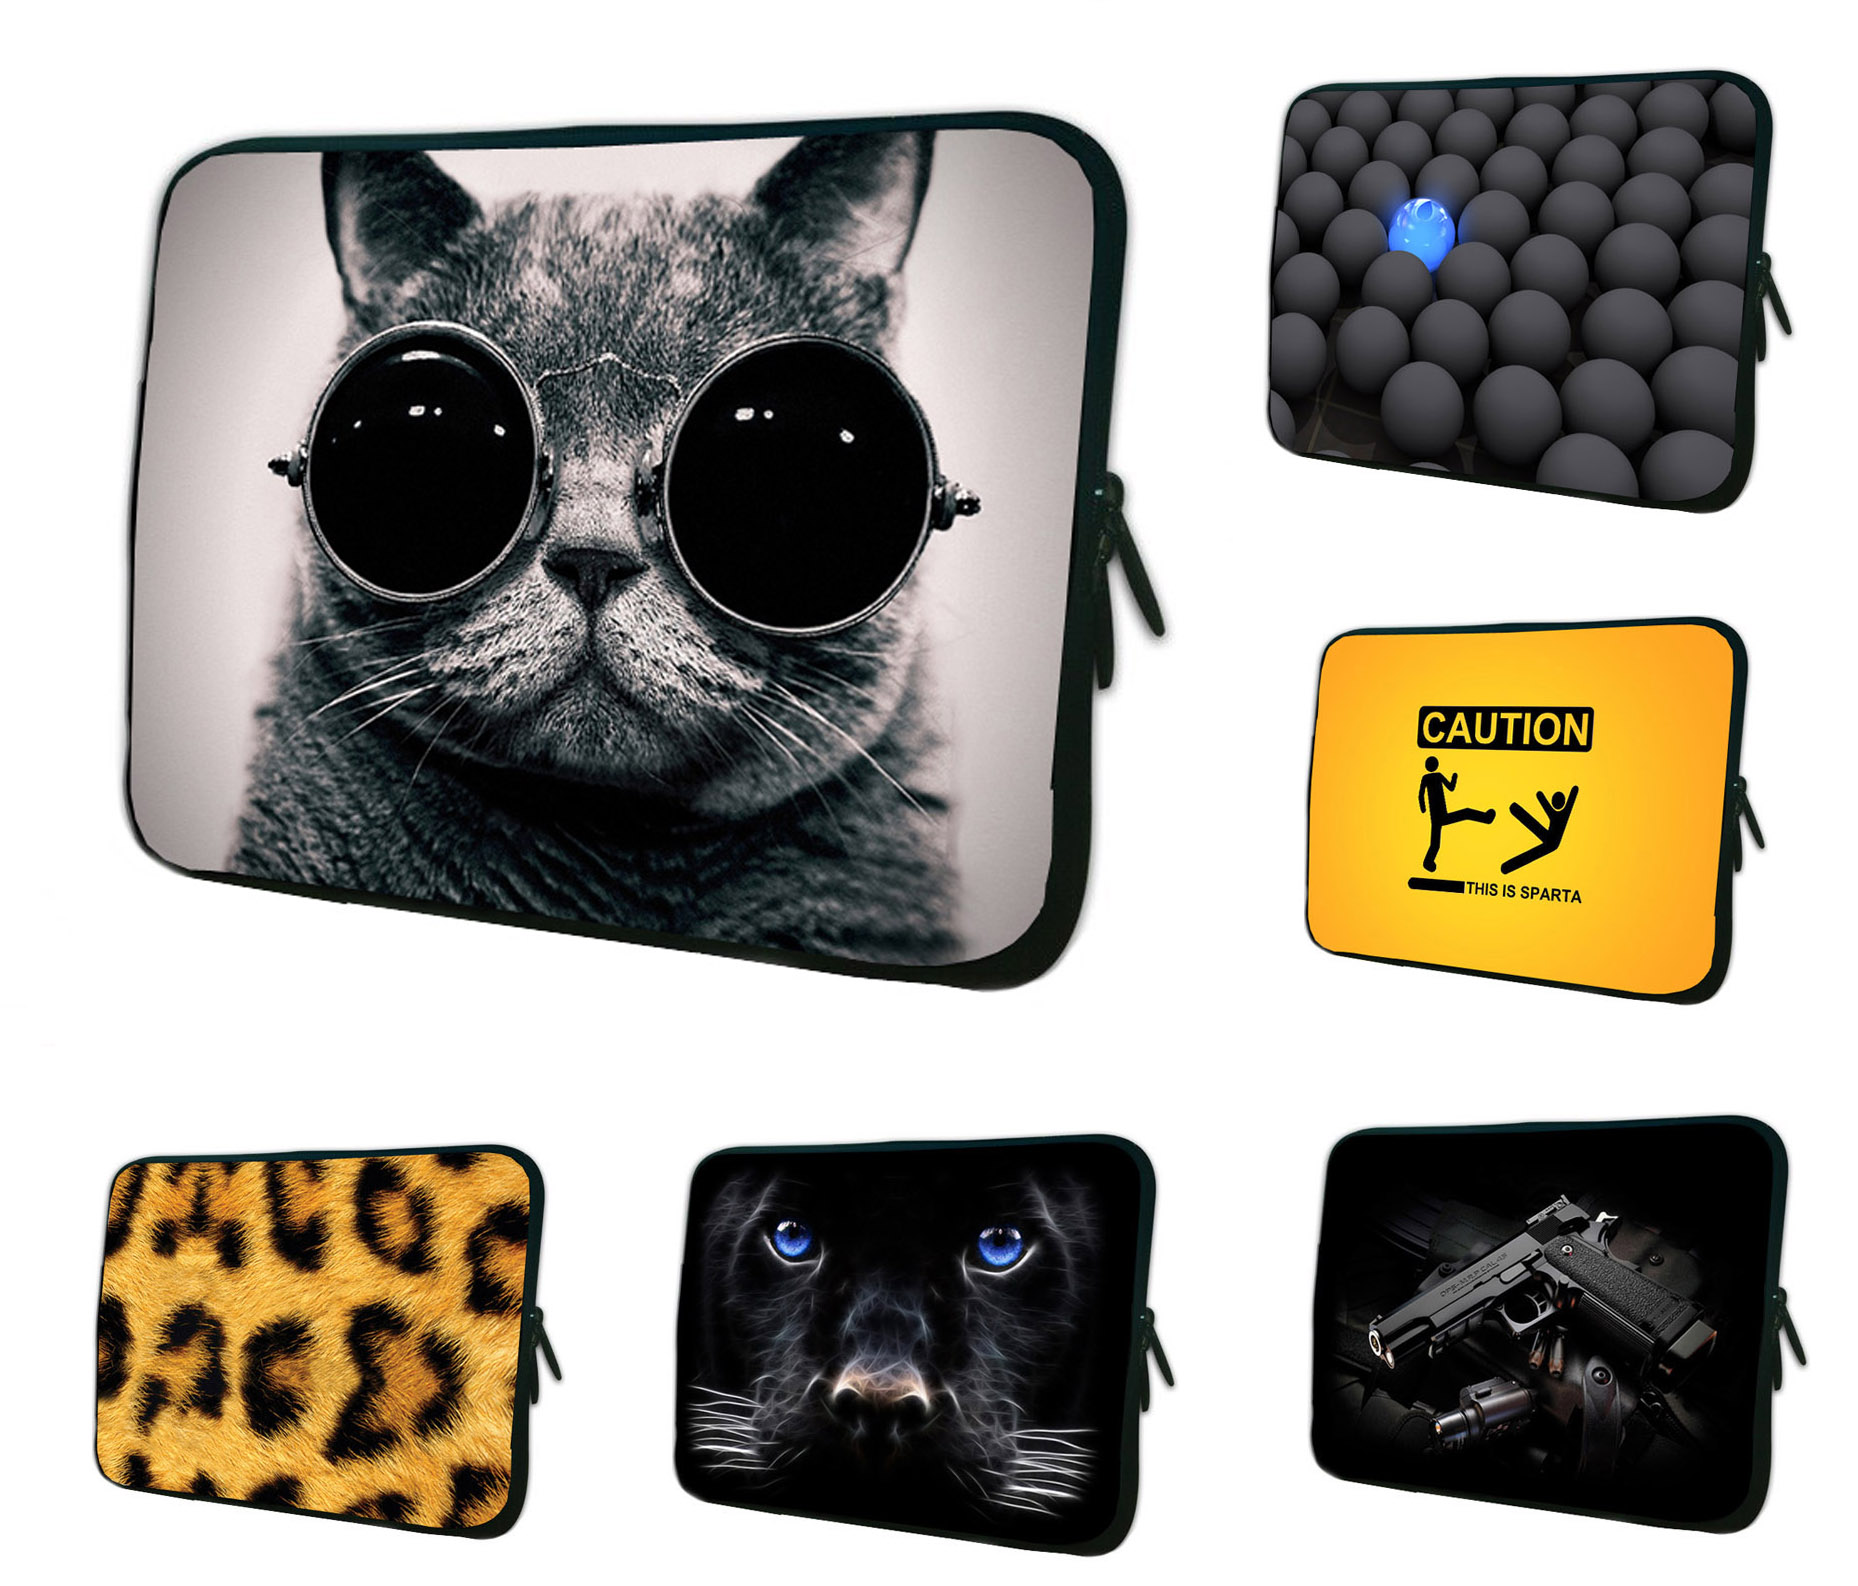 Hot Laptop Liner Bags Cases For Asus Transformer Pad TF300 TF300T 10.1 Universal 10 Tablet 10.1 9.7 Netbook Neoprene Inner Bag